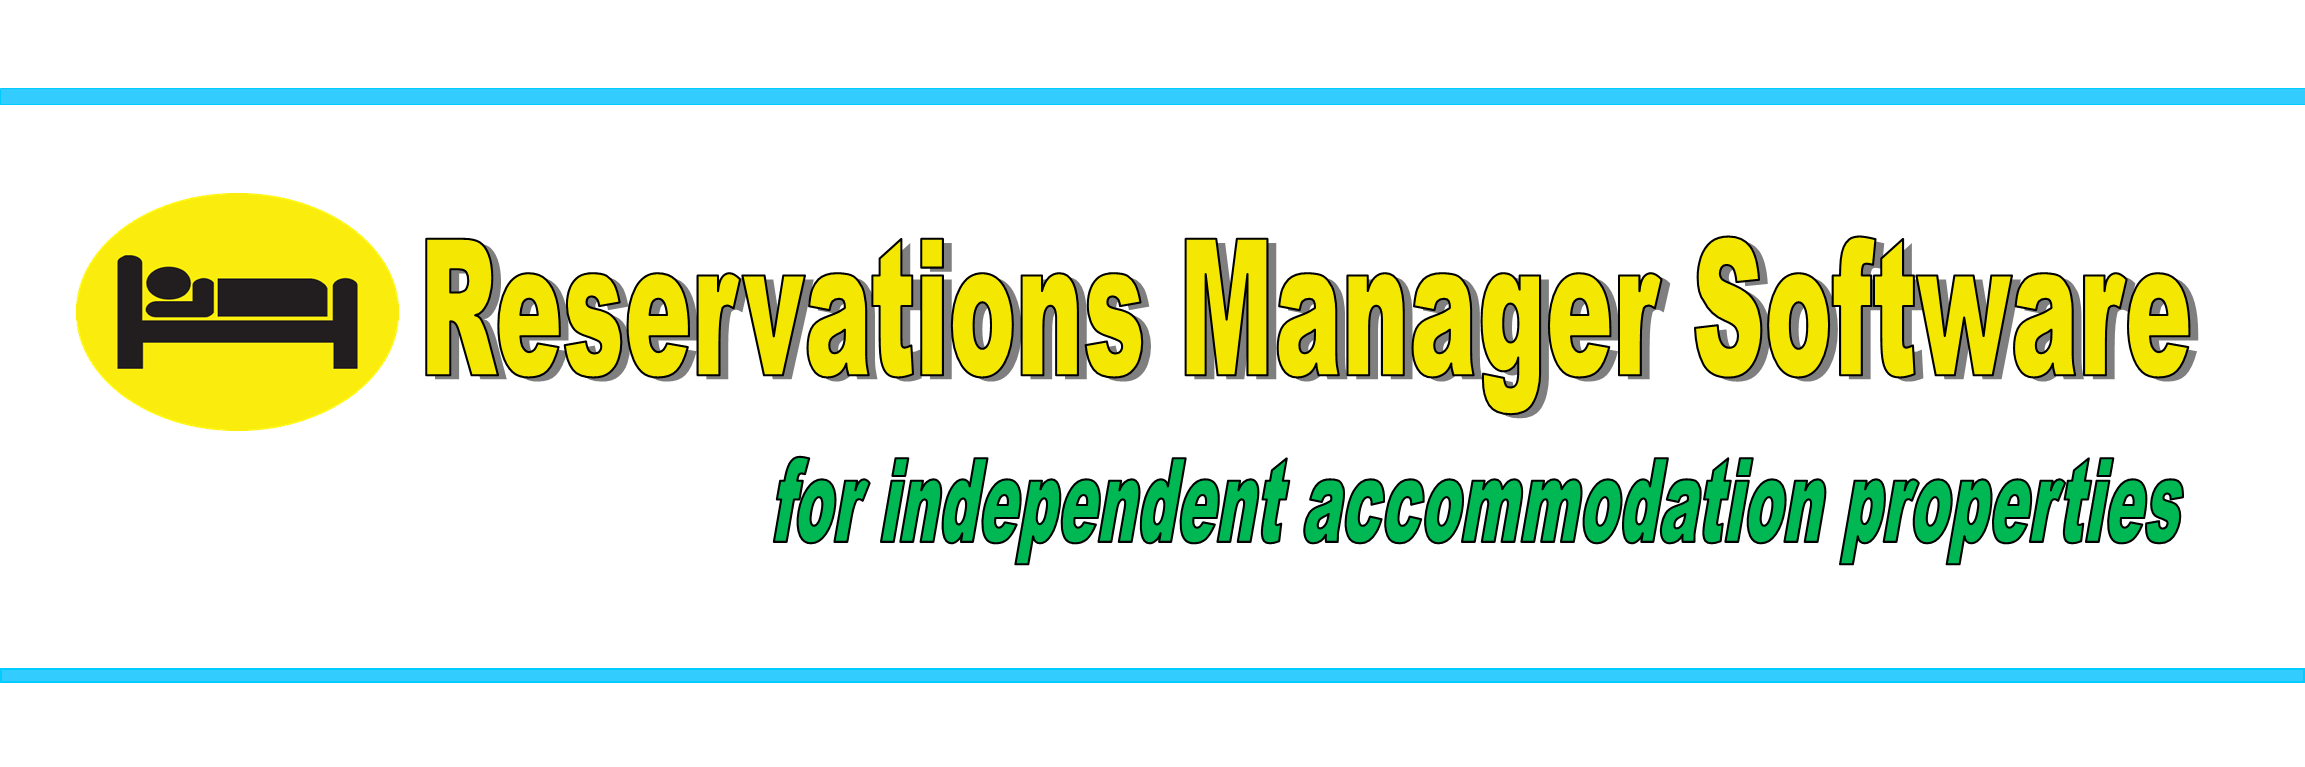 Reservations Manager